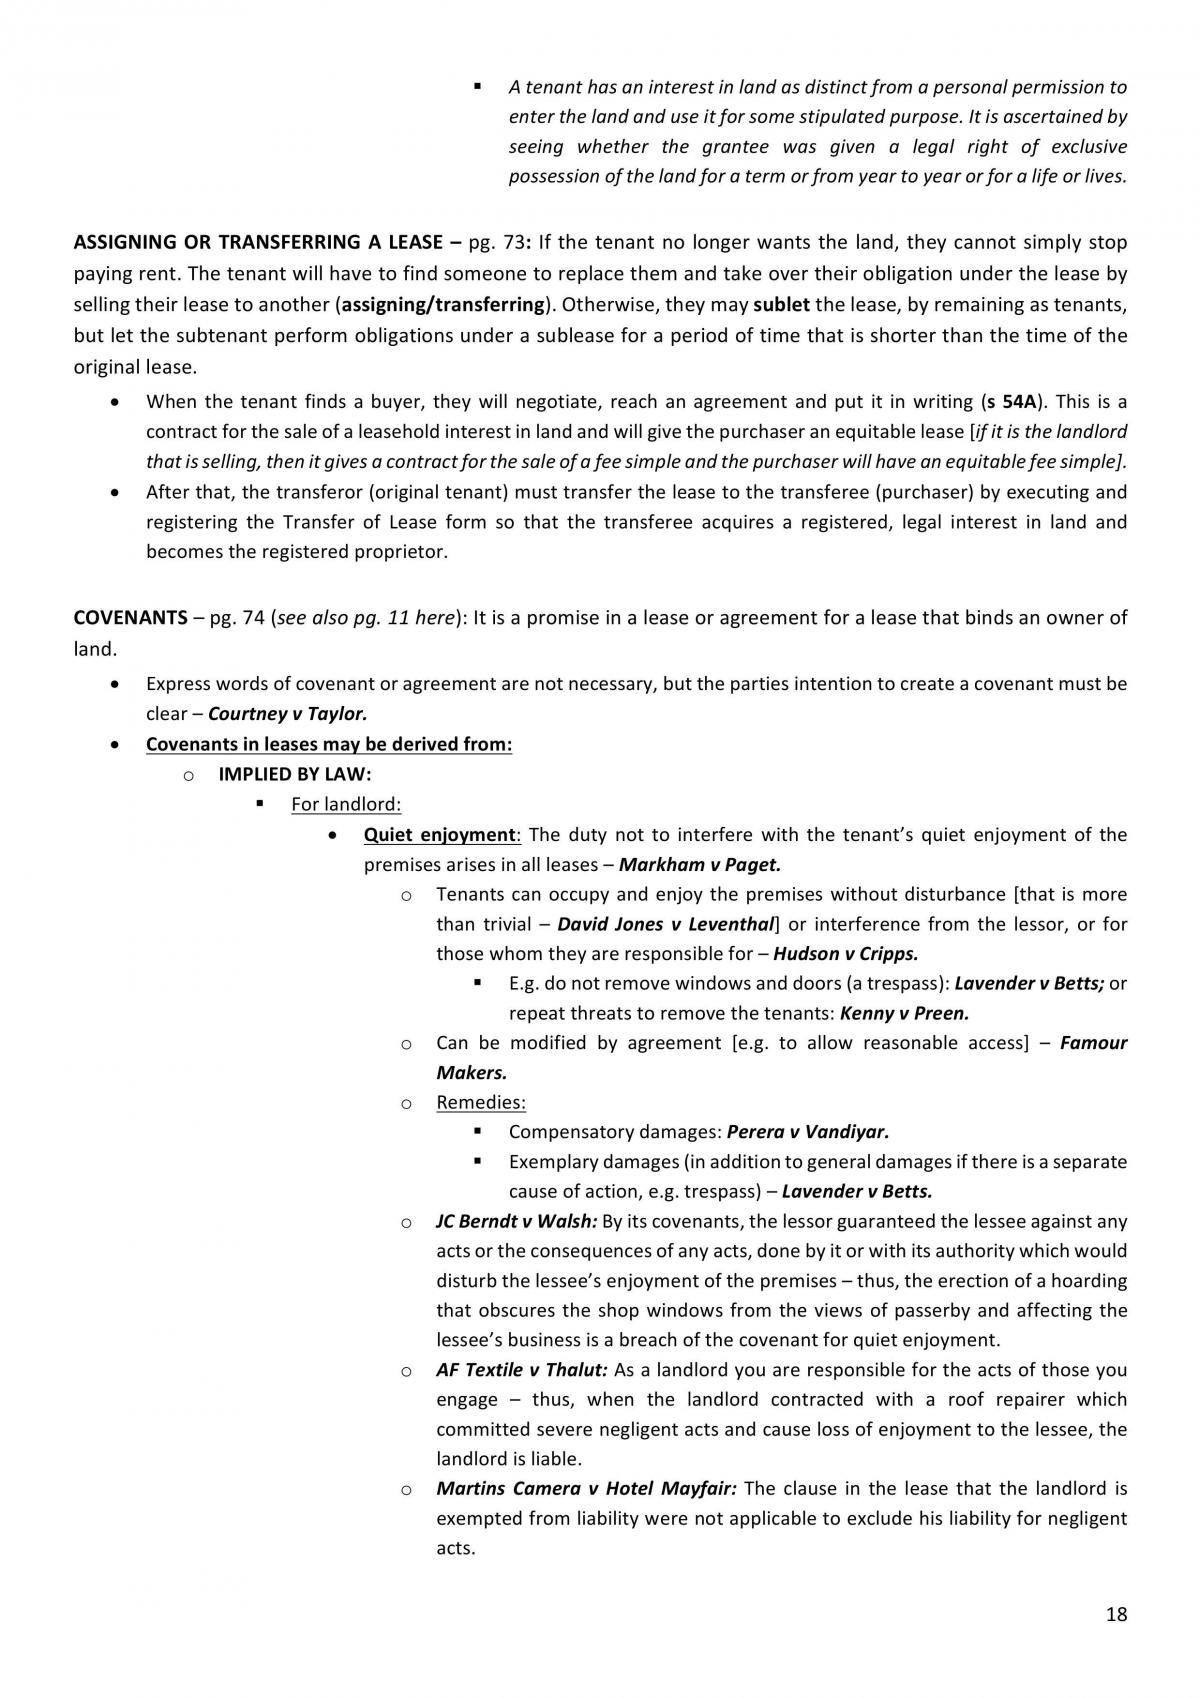 LAWS2383 - Land Law - Final Notes - Page 18